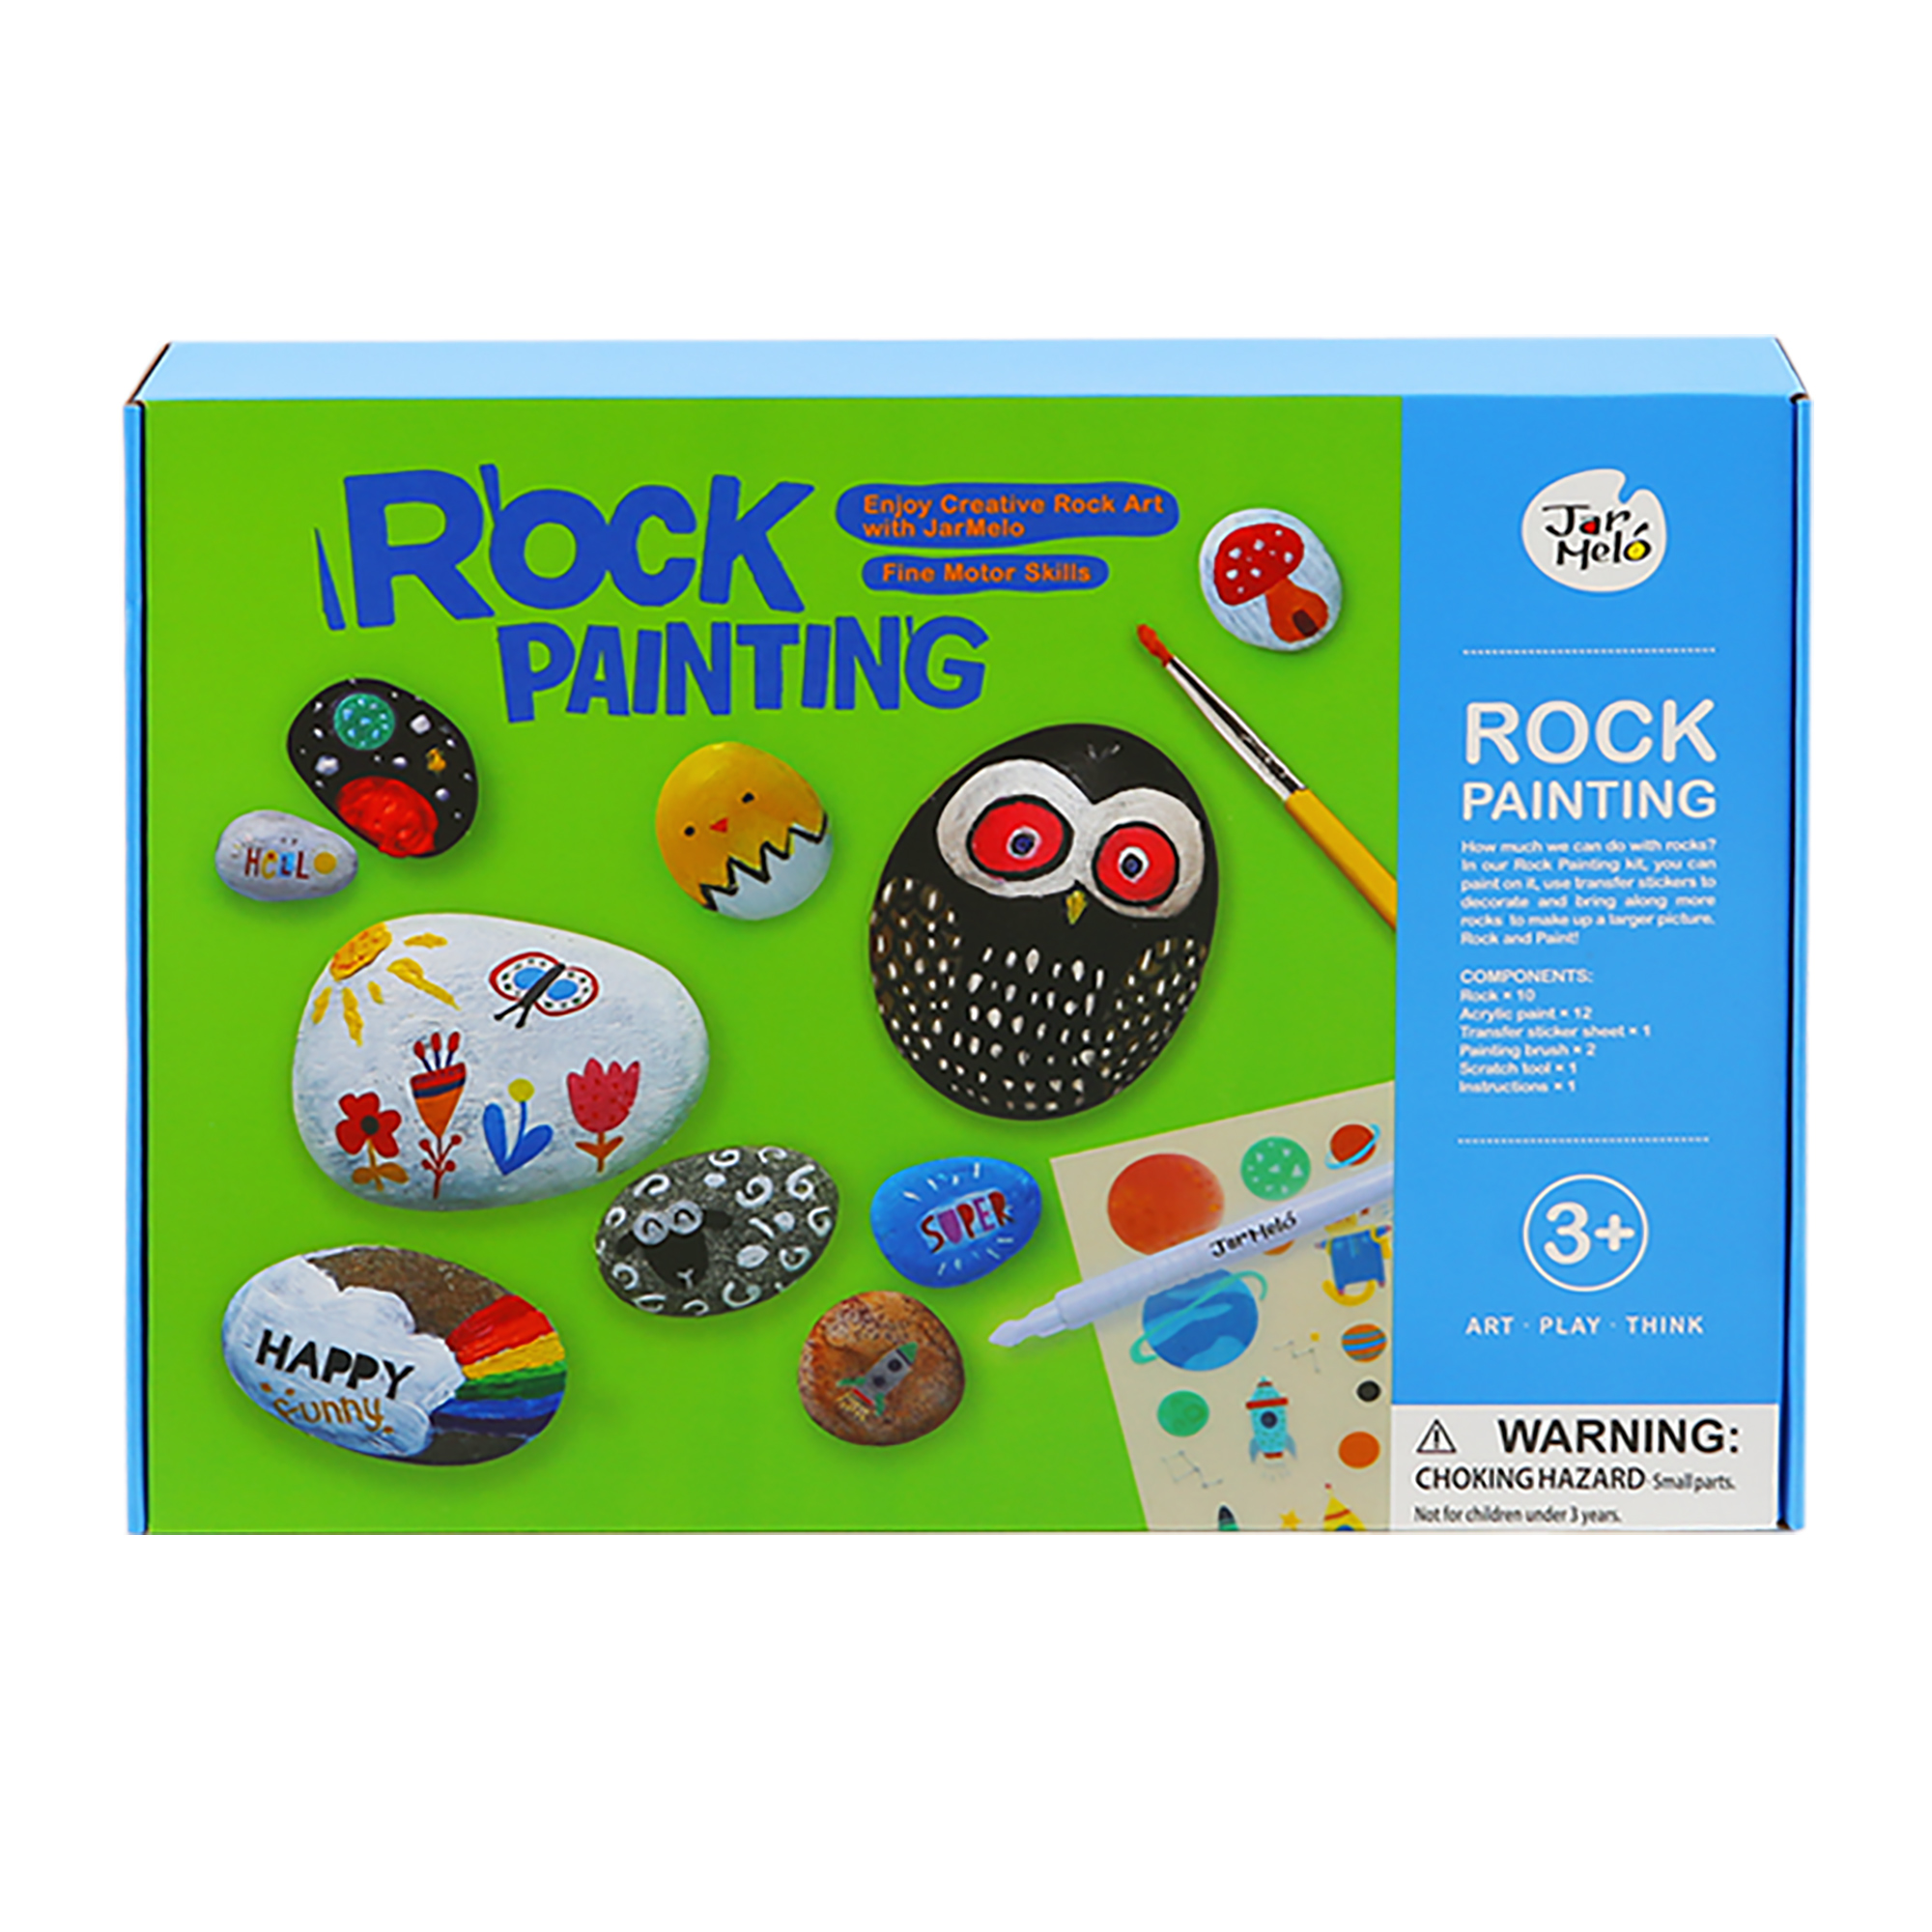 Non-Toxic magic stone children other toys arts and crafts rock painting kit for kids